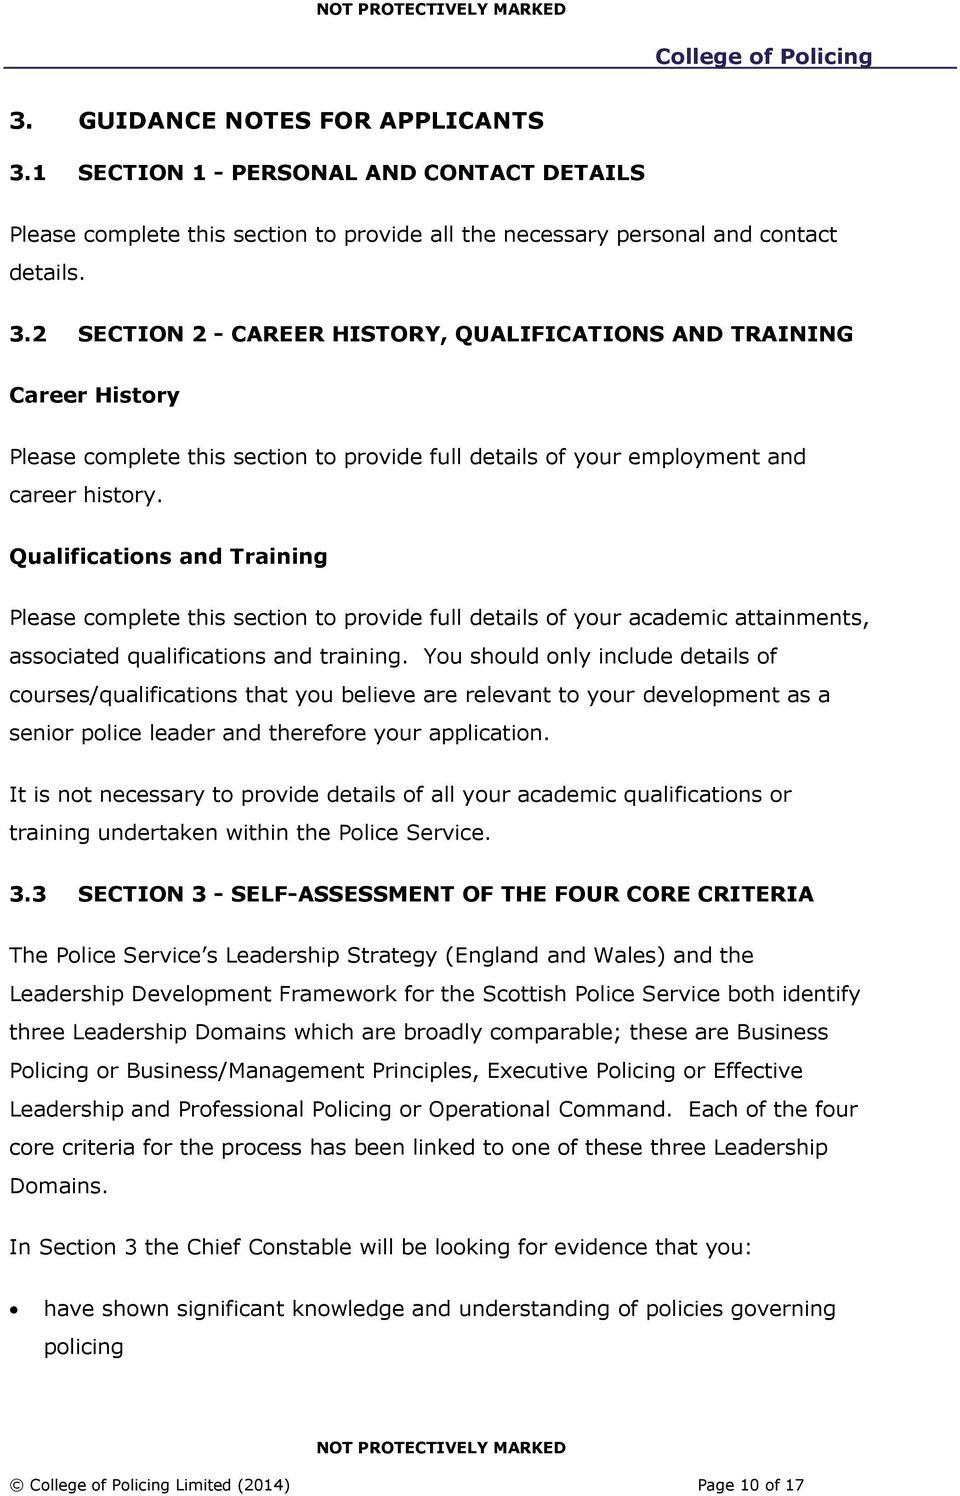 You should only include details of courses/qualifications that you believe are relevant to your development as a senior police leader and therefore your application.